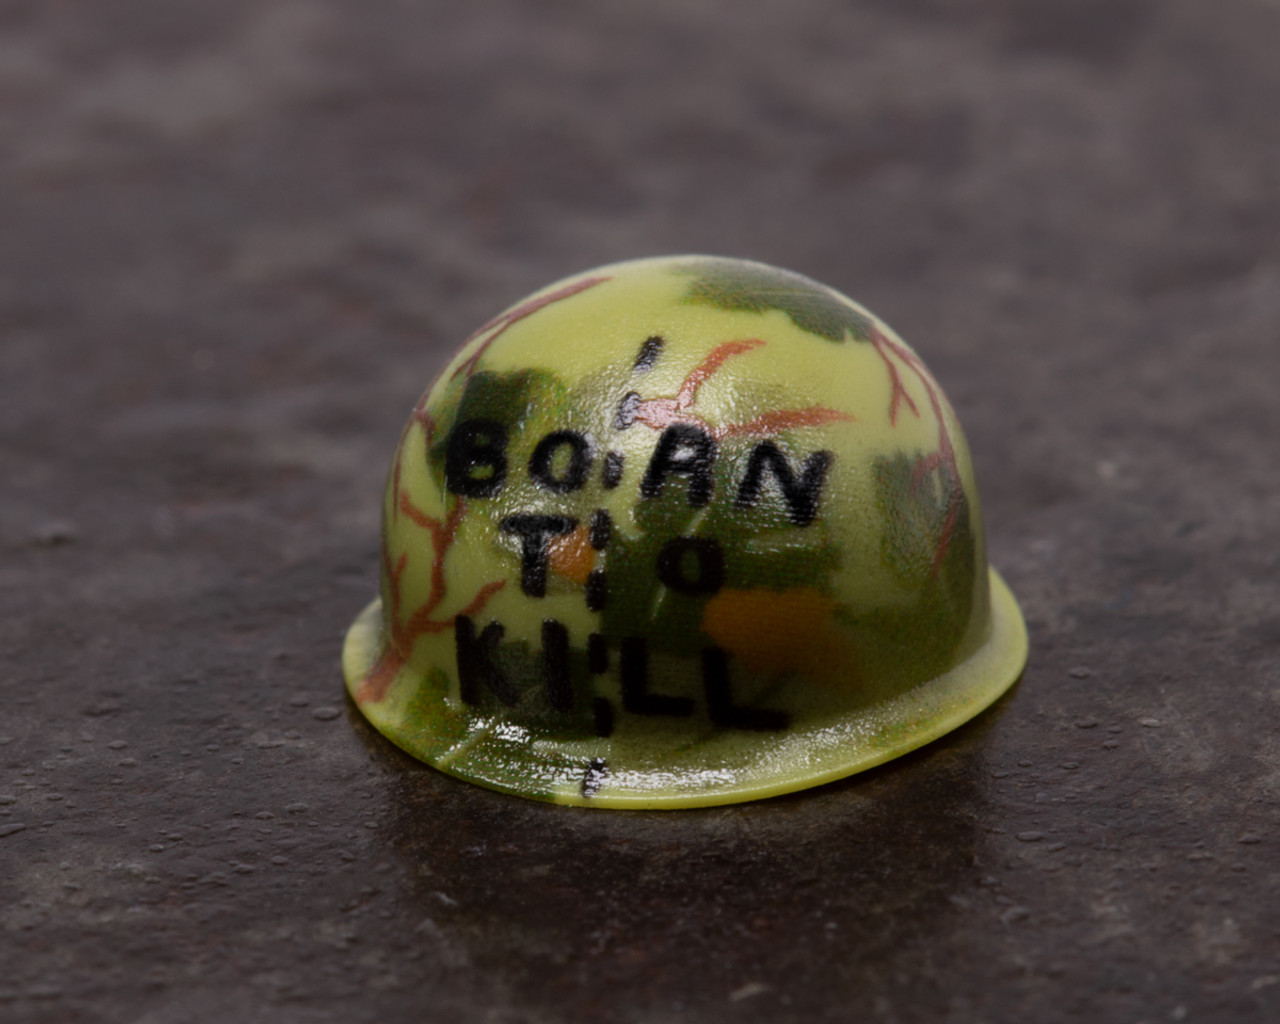 Born to Kill Vietnam Helmet with Mitchell Pattern